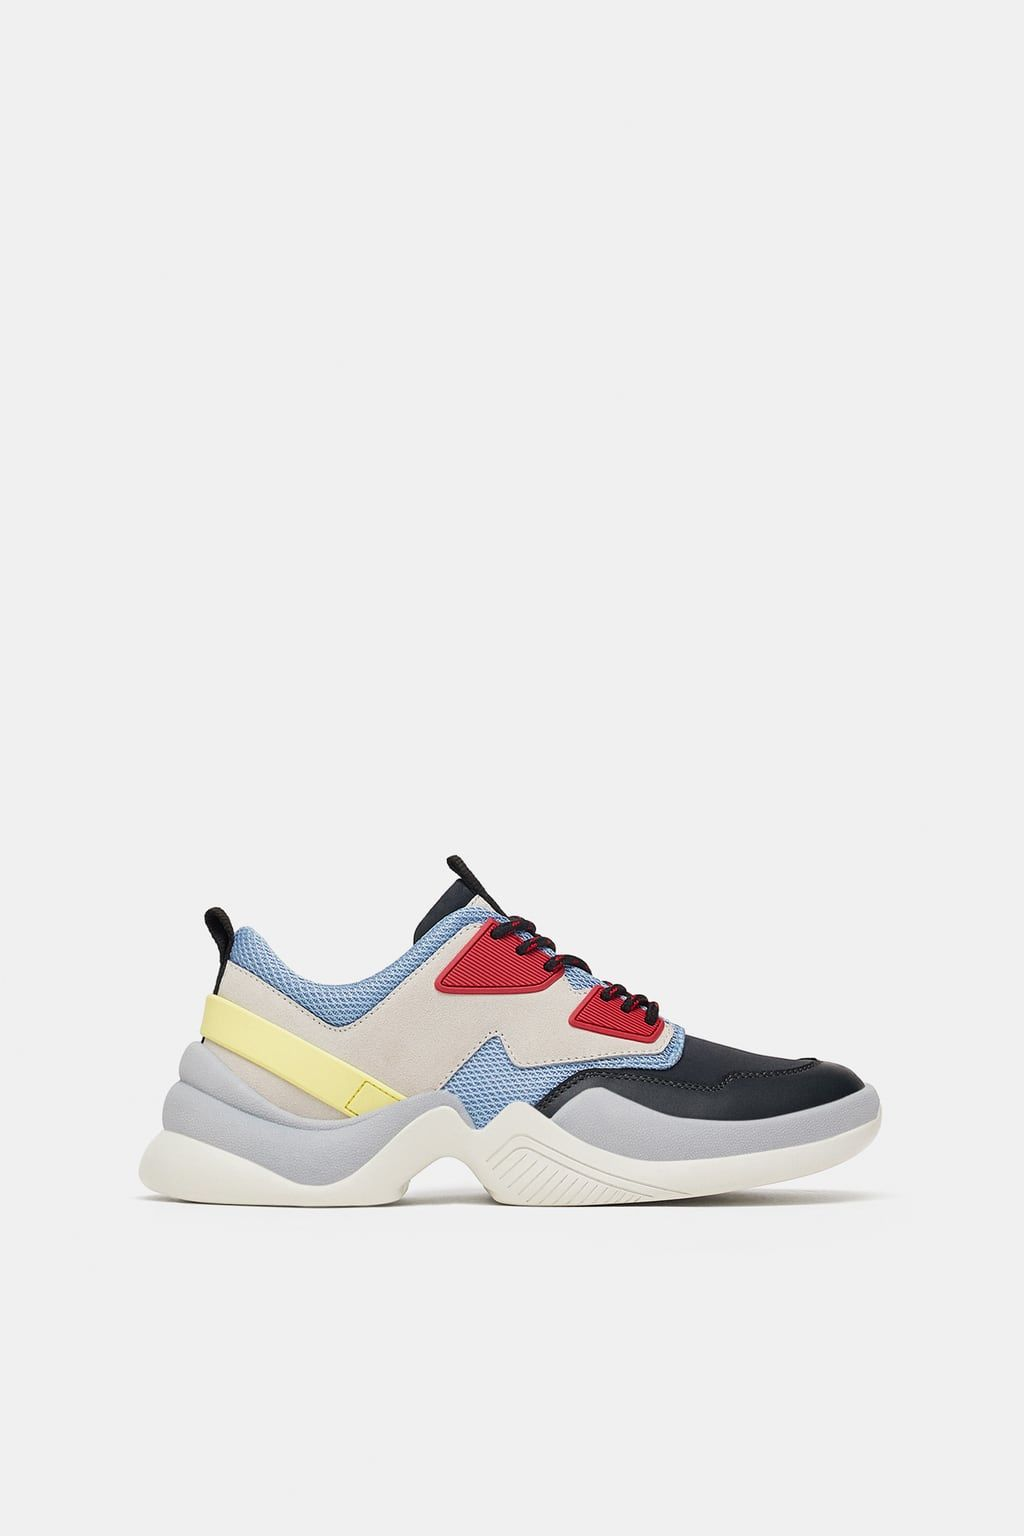 Image 1 Of Fashion Sneakers From Zara Best Sneakers Sneakers Sneakers Fashion